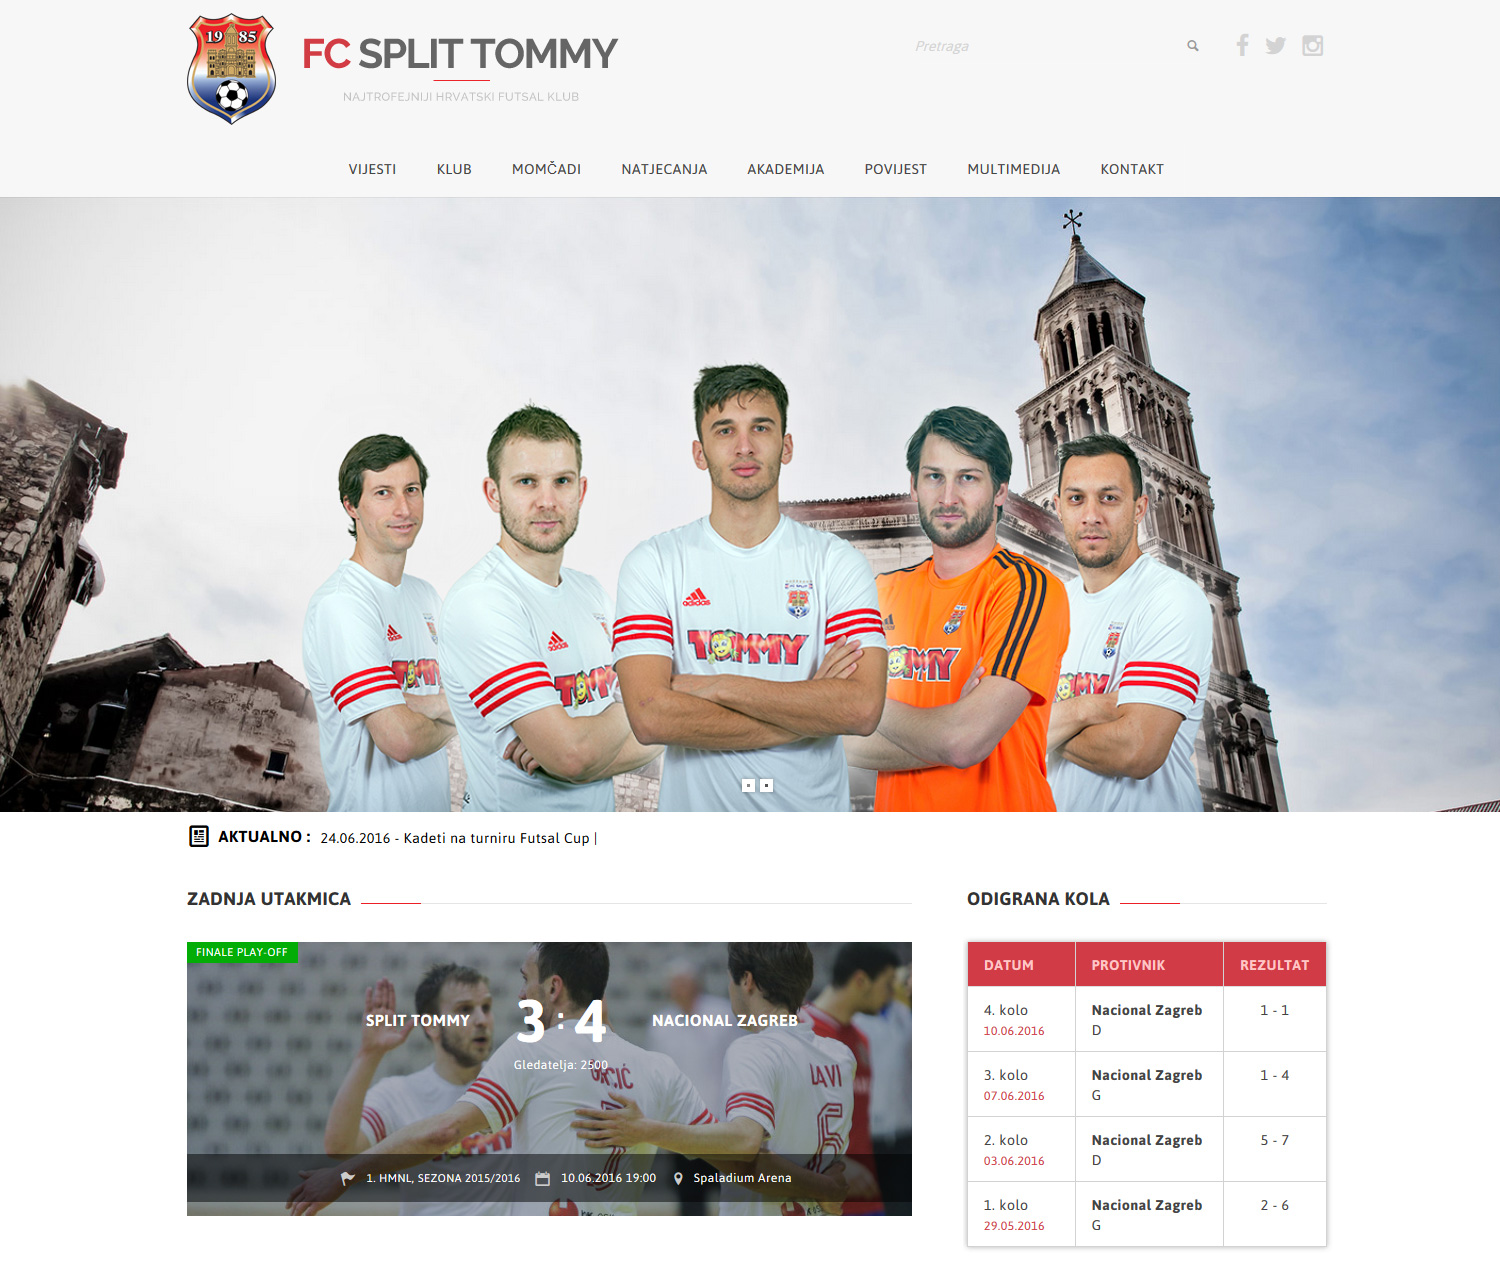 futsal club website design